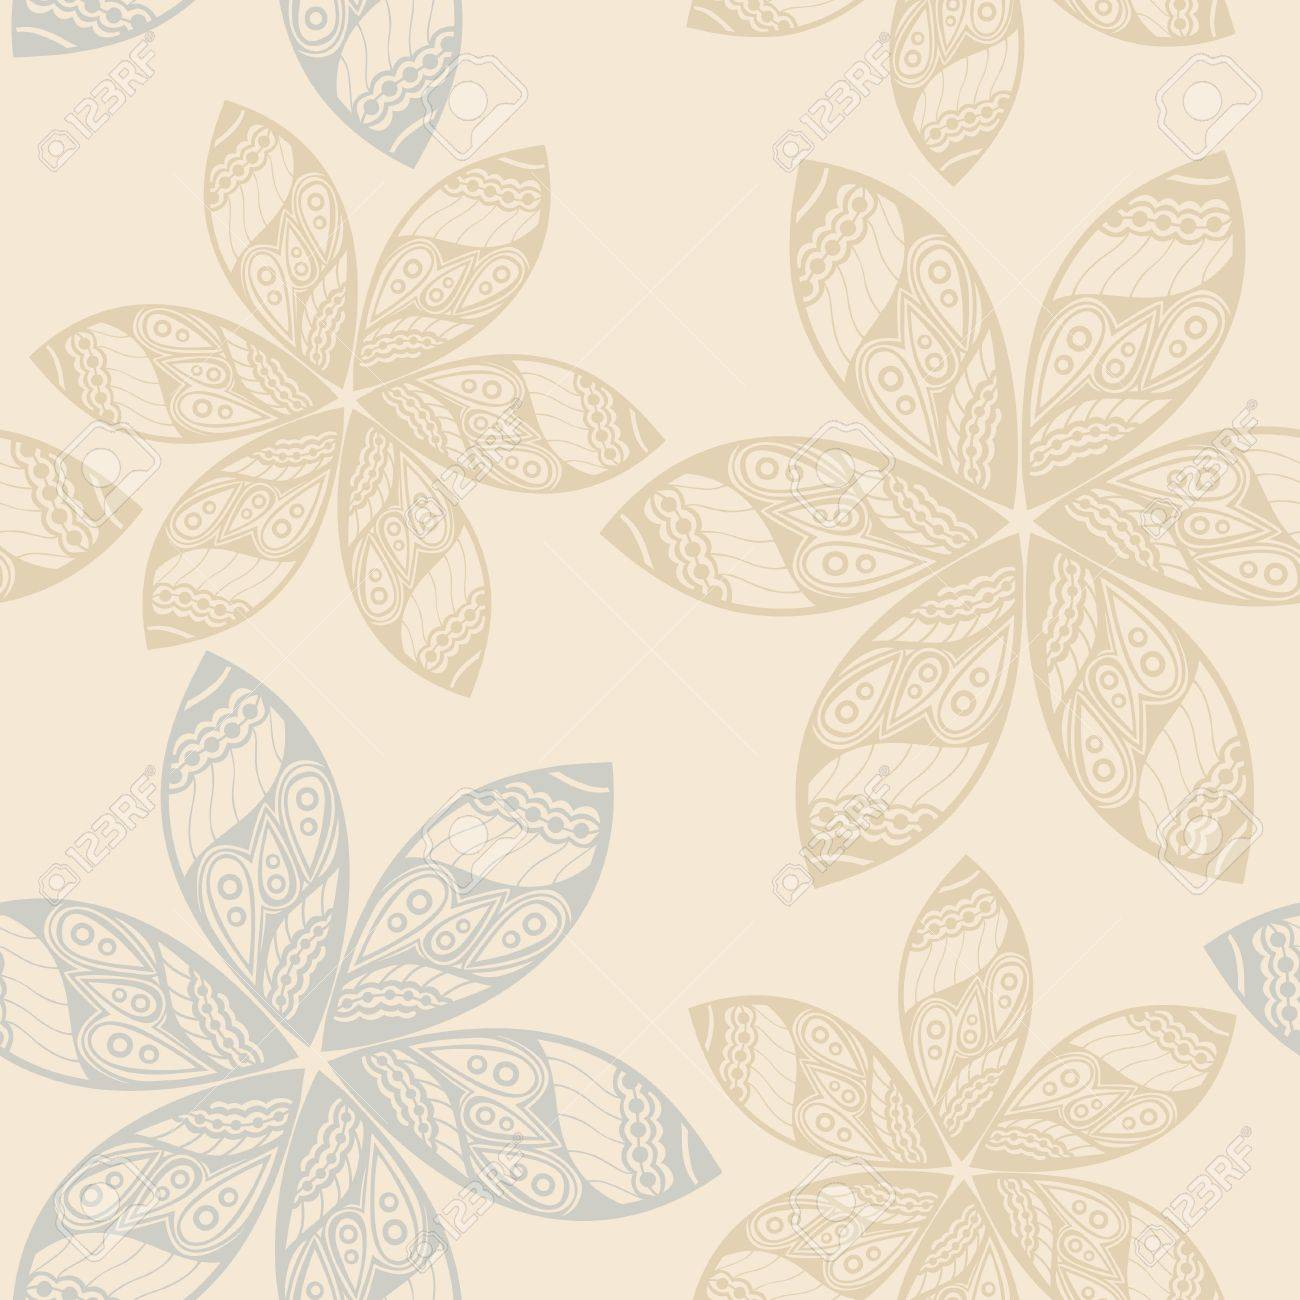 Seamless Texture With Flowers And Birds Endless Floral Pattern Can Be Used For Wallpaper